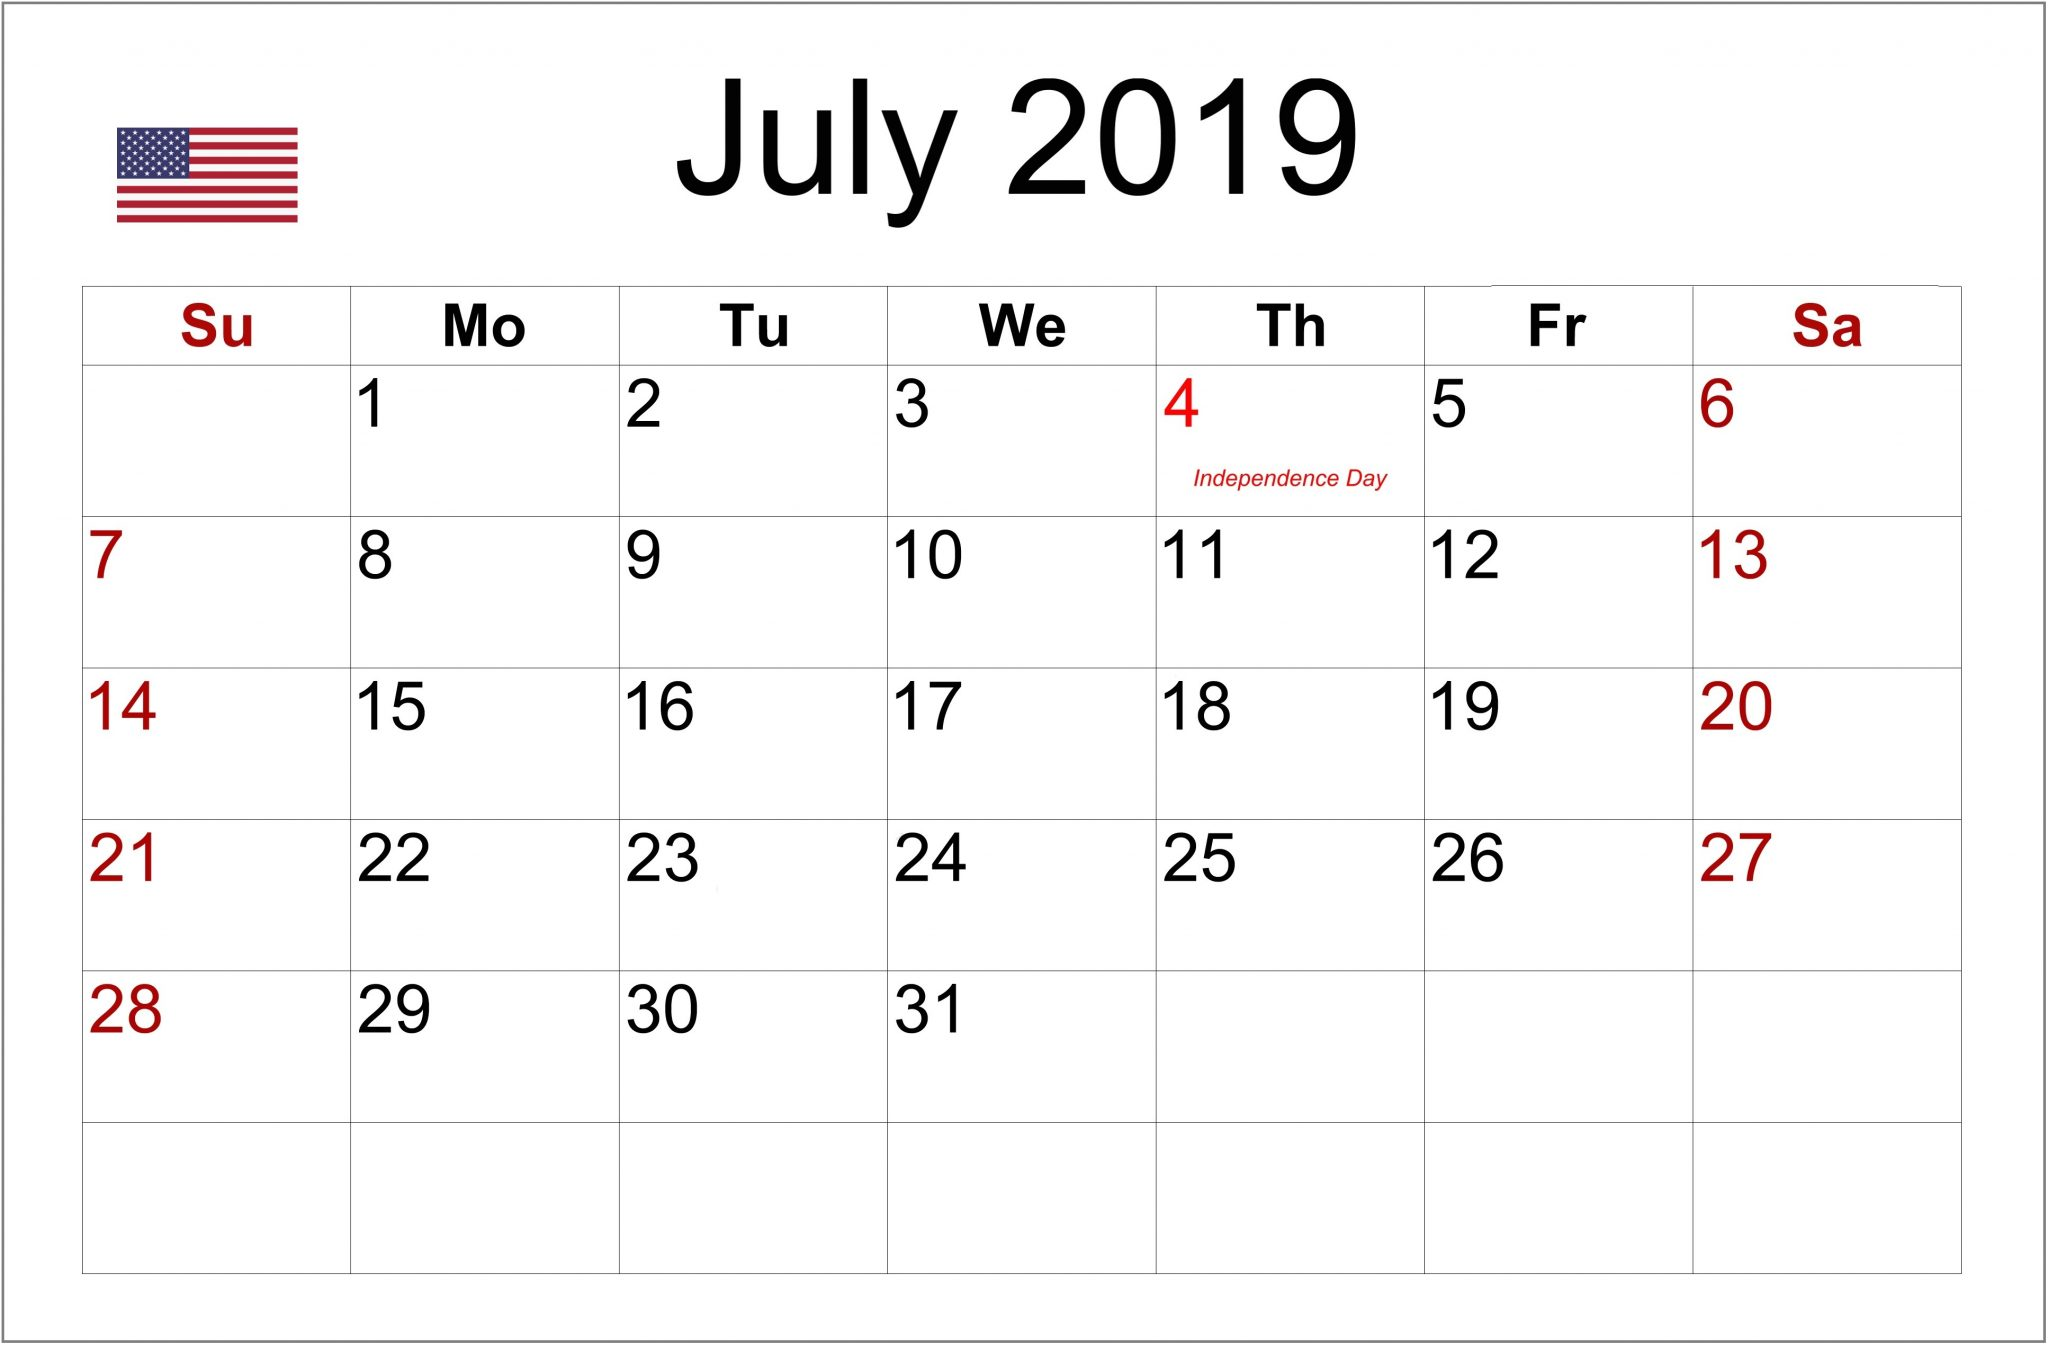 July 2019 Public Holidays Calendar USA